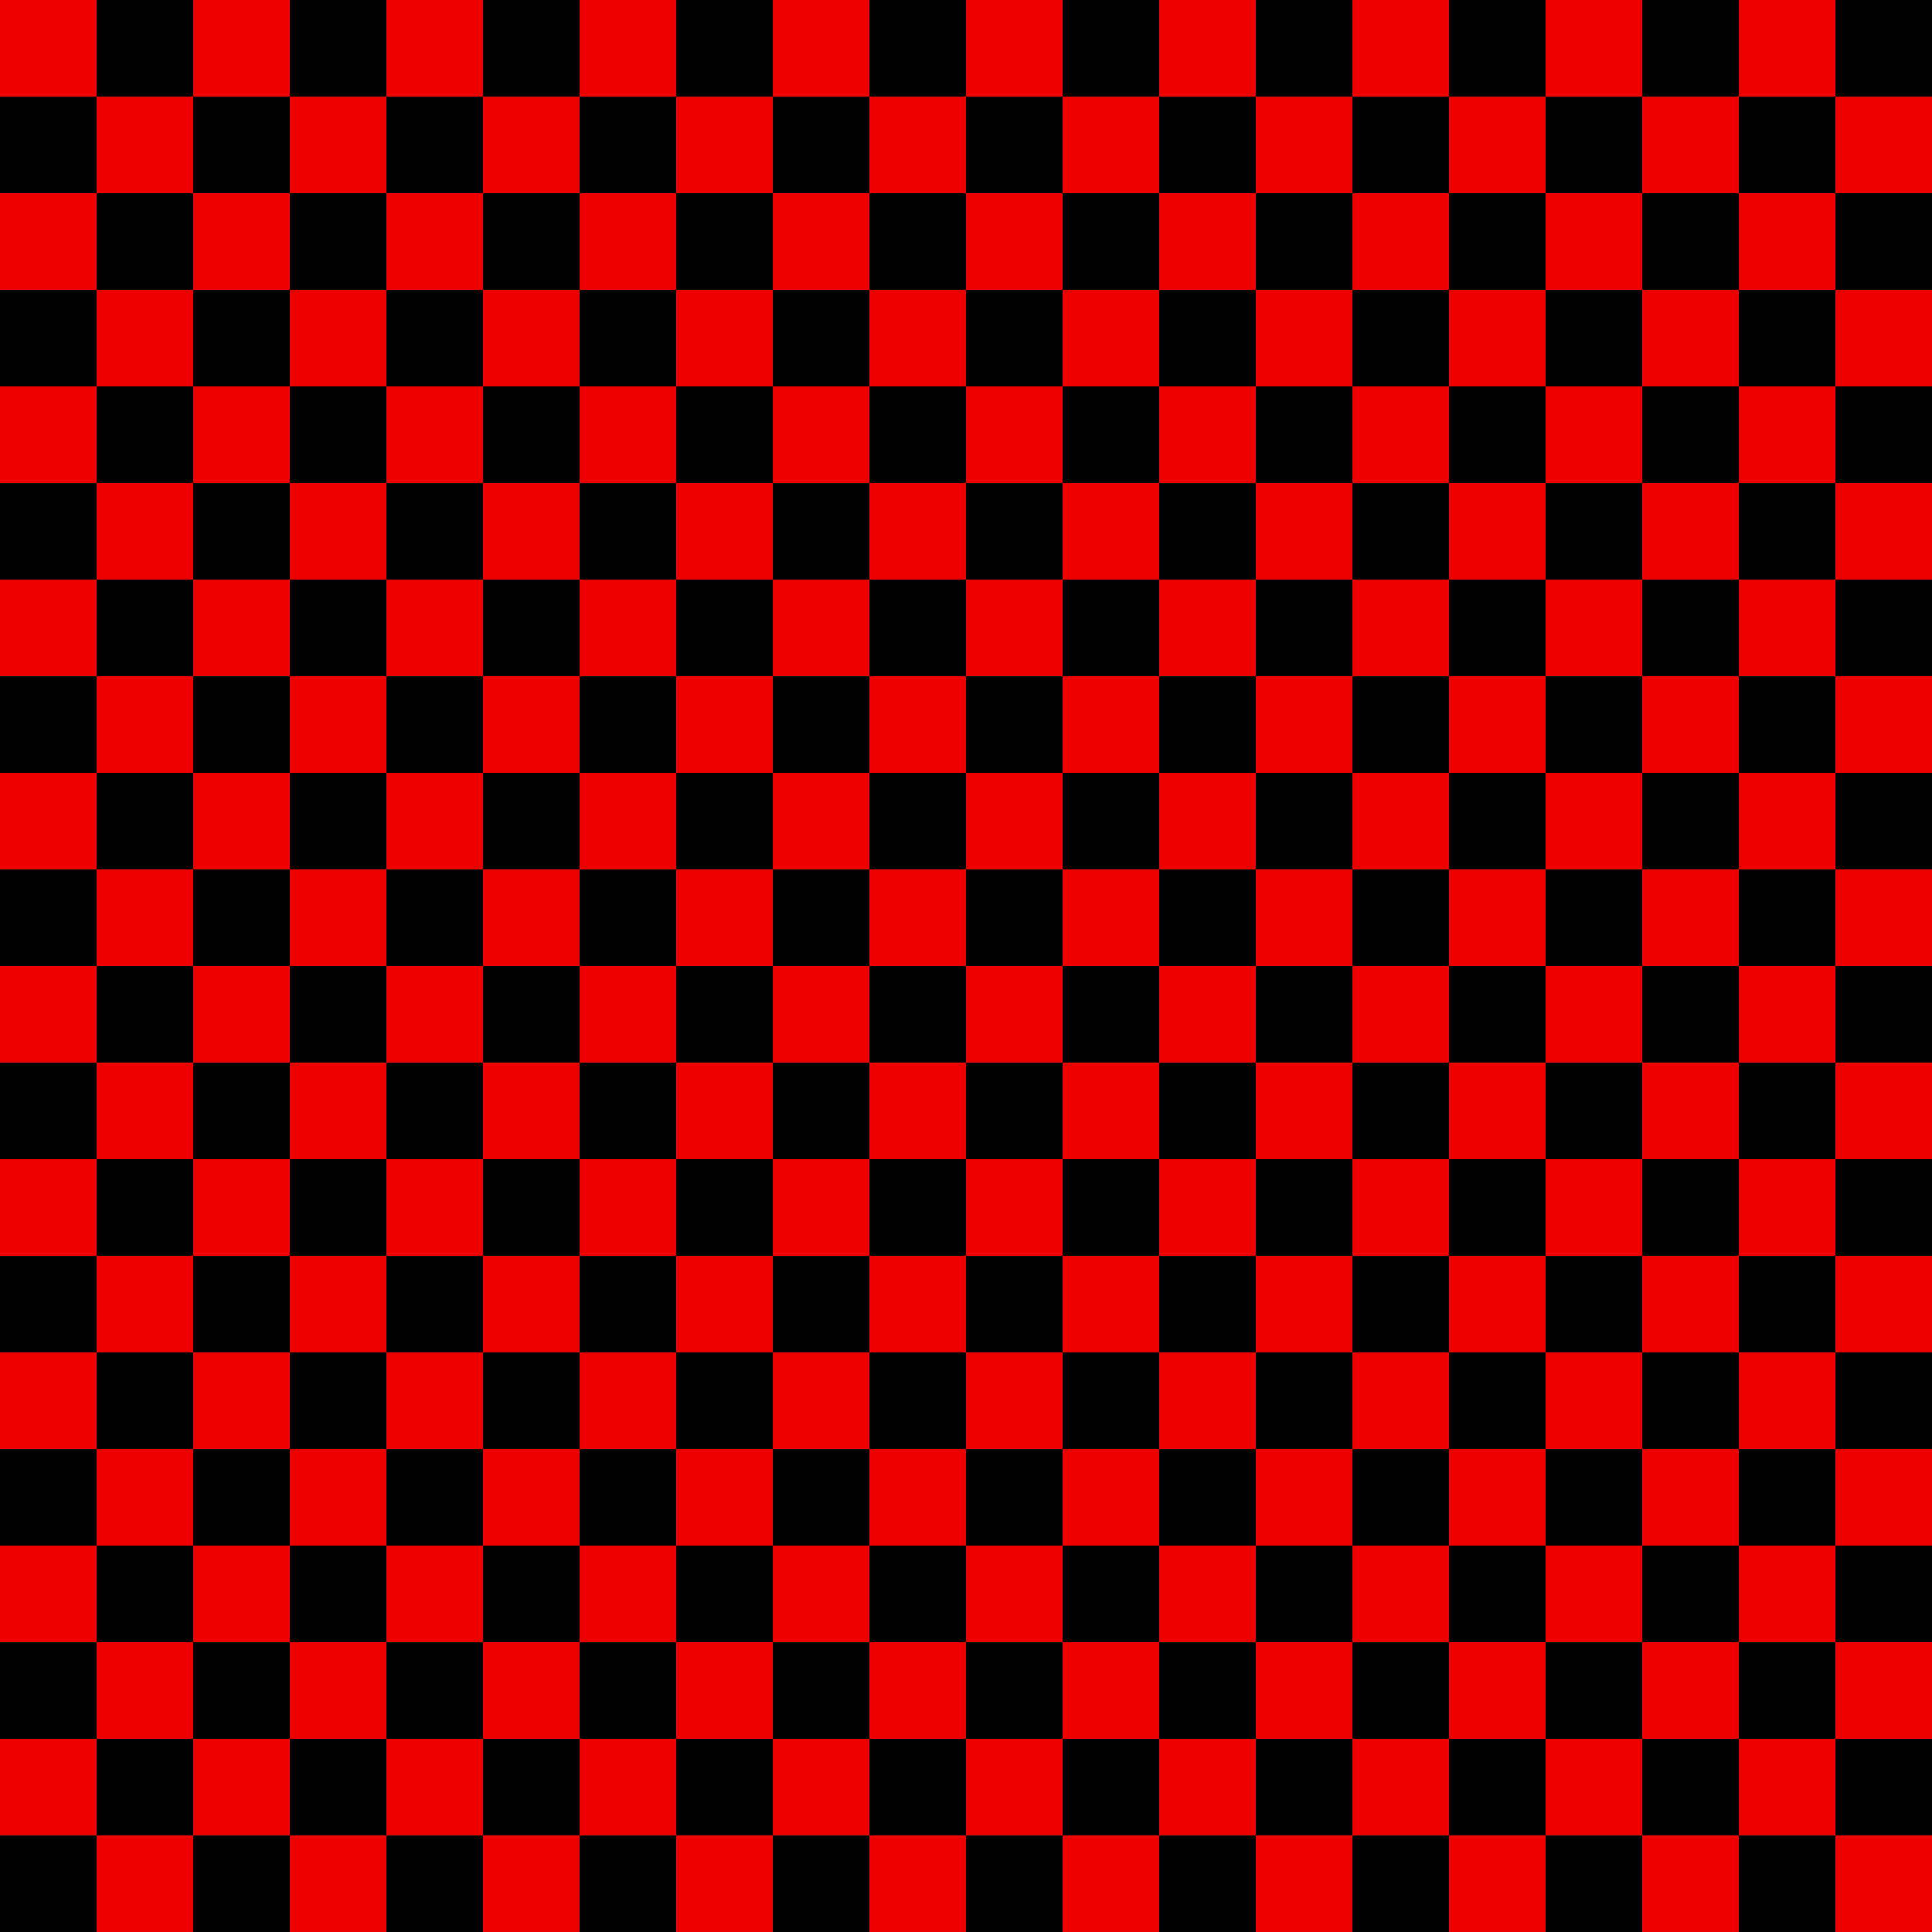 Black And Red >> Black And Red Checkerboard Pattern Free Clip Art